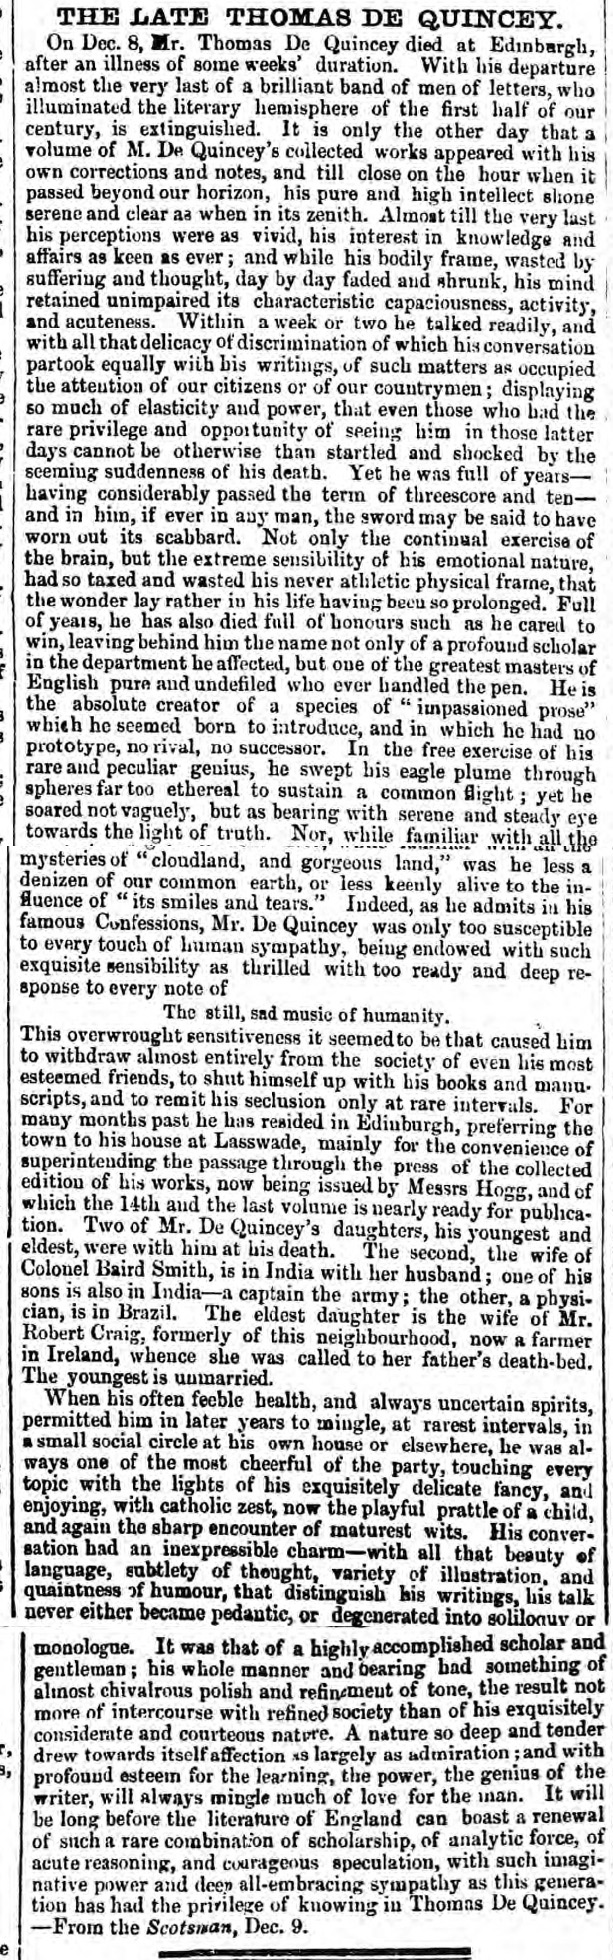 historical newspaper report on thomas de quincey